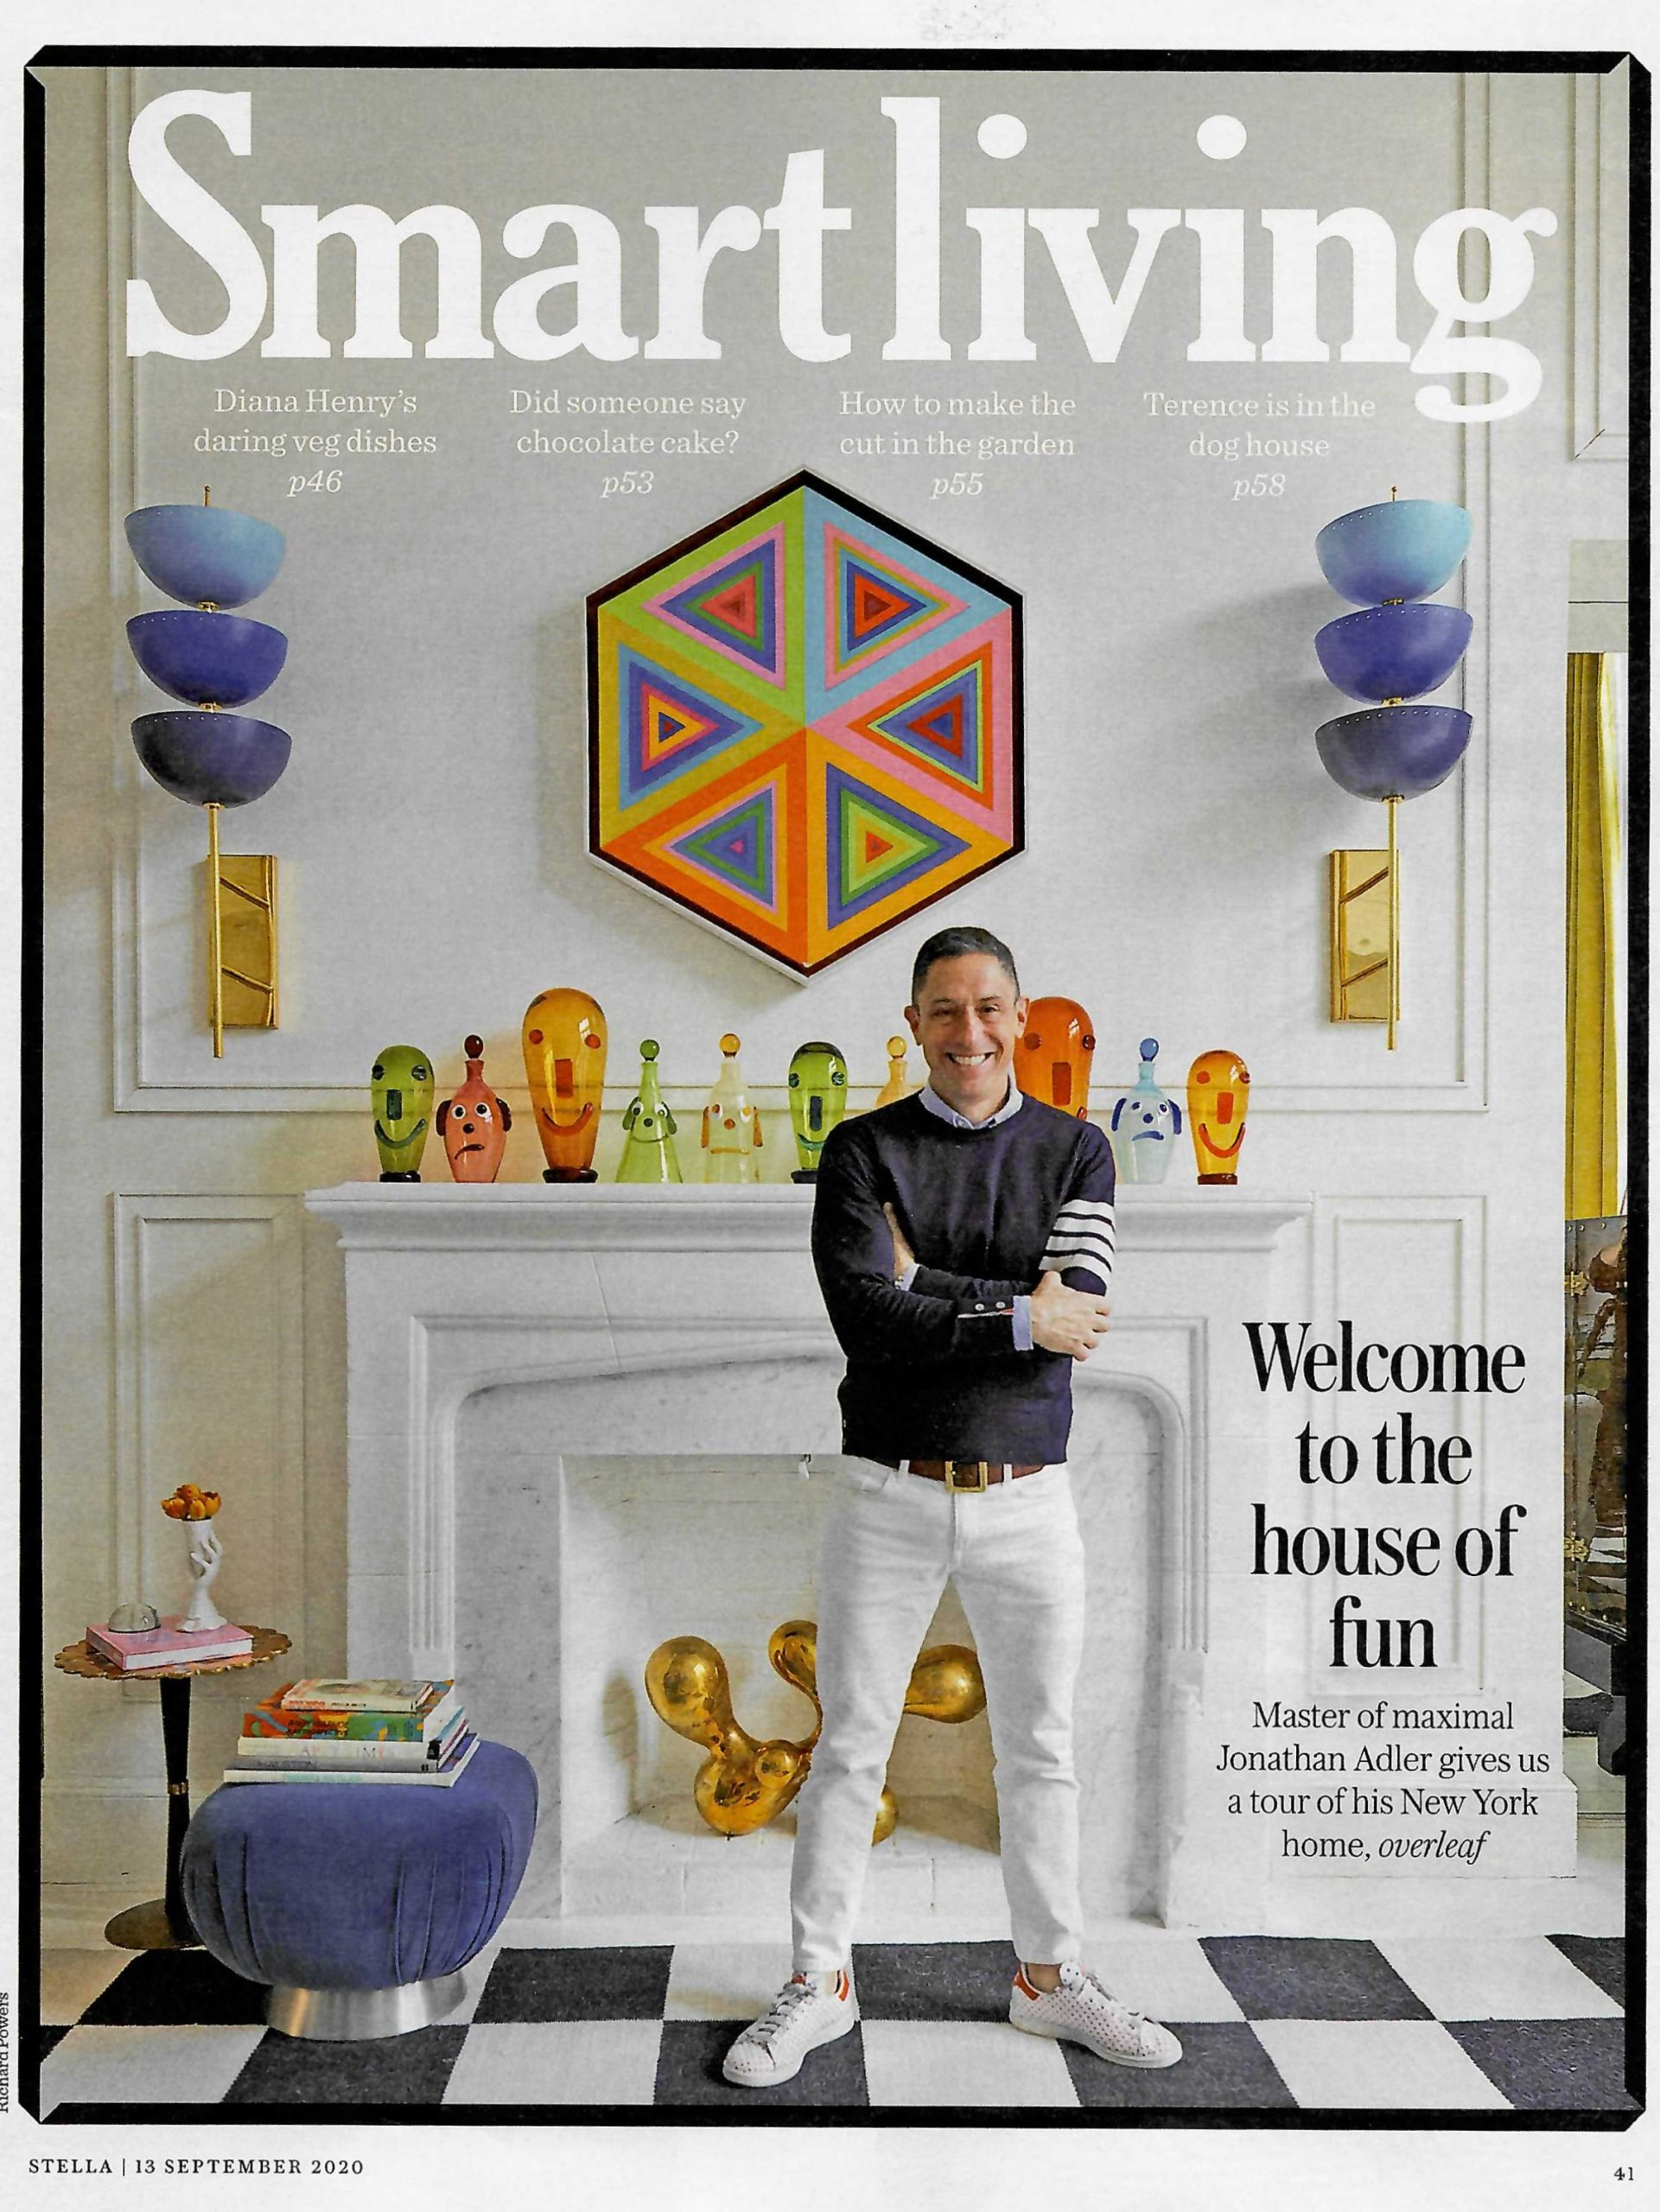 Master of maximalism Jonathan Adler gives Stella a tour of his New York home